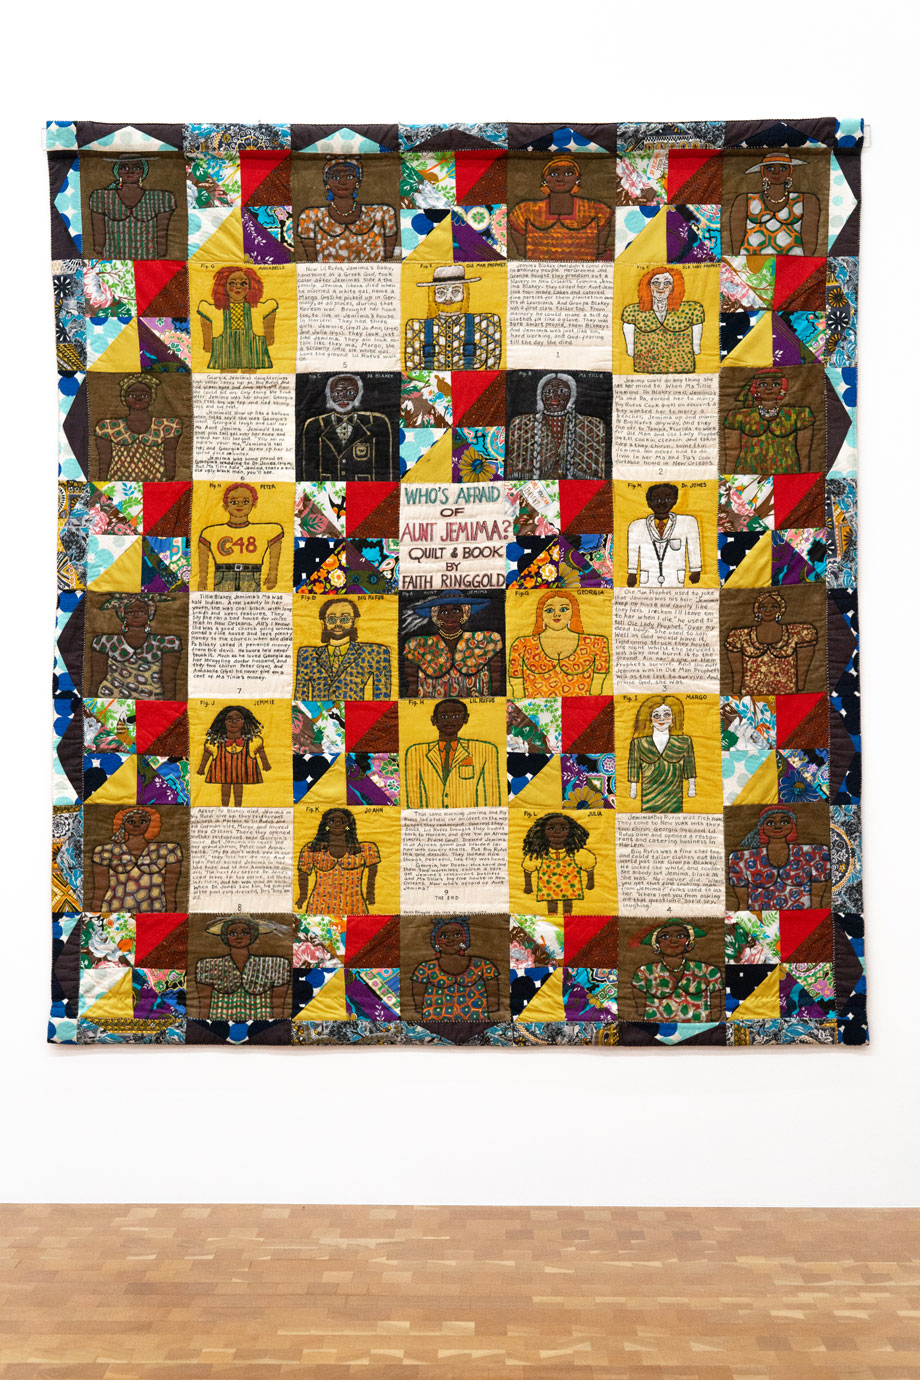 Faith Ringgold Who's Afraid of Aunt Jemima?, 1983 acrylic on canvas 90 in x 80 in © 2020 Faith Ringgold / Artists Rights Society (ARS), New York, Courtesy ACA Galleries, New York Courtesy: Glenstone Museum